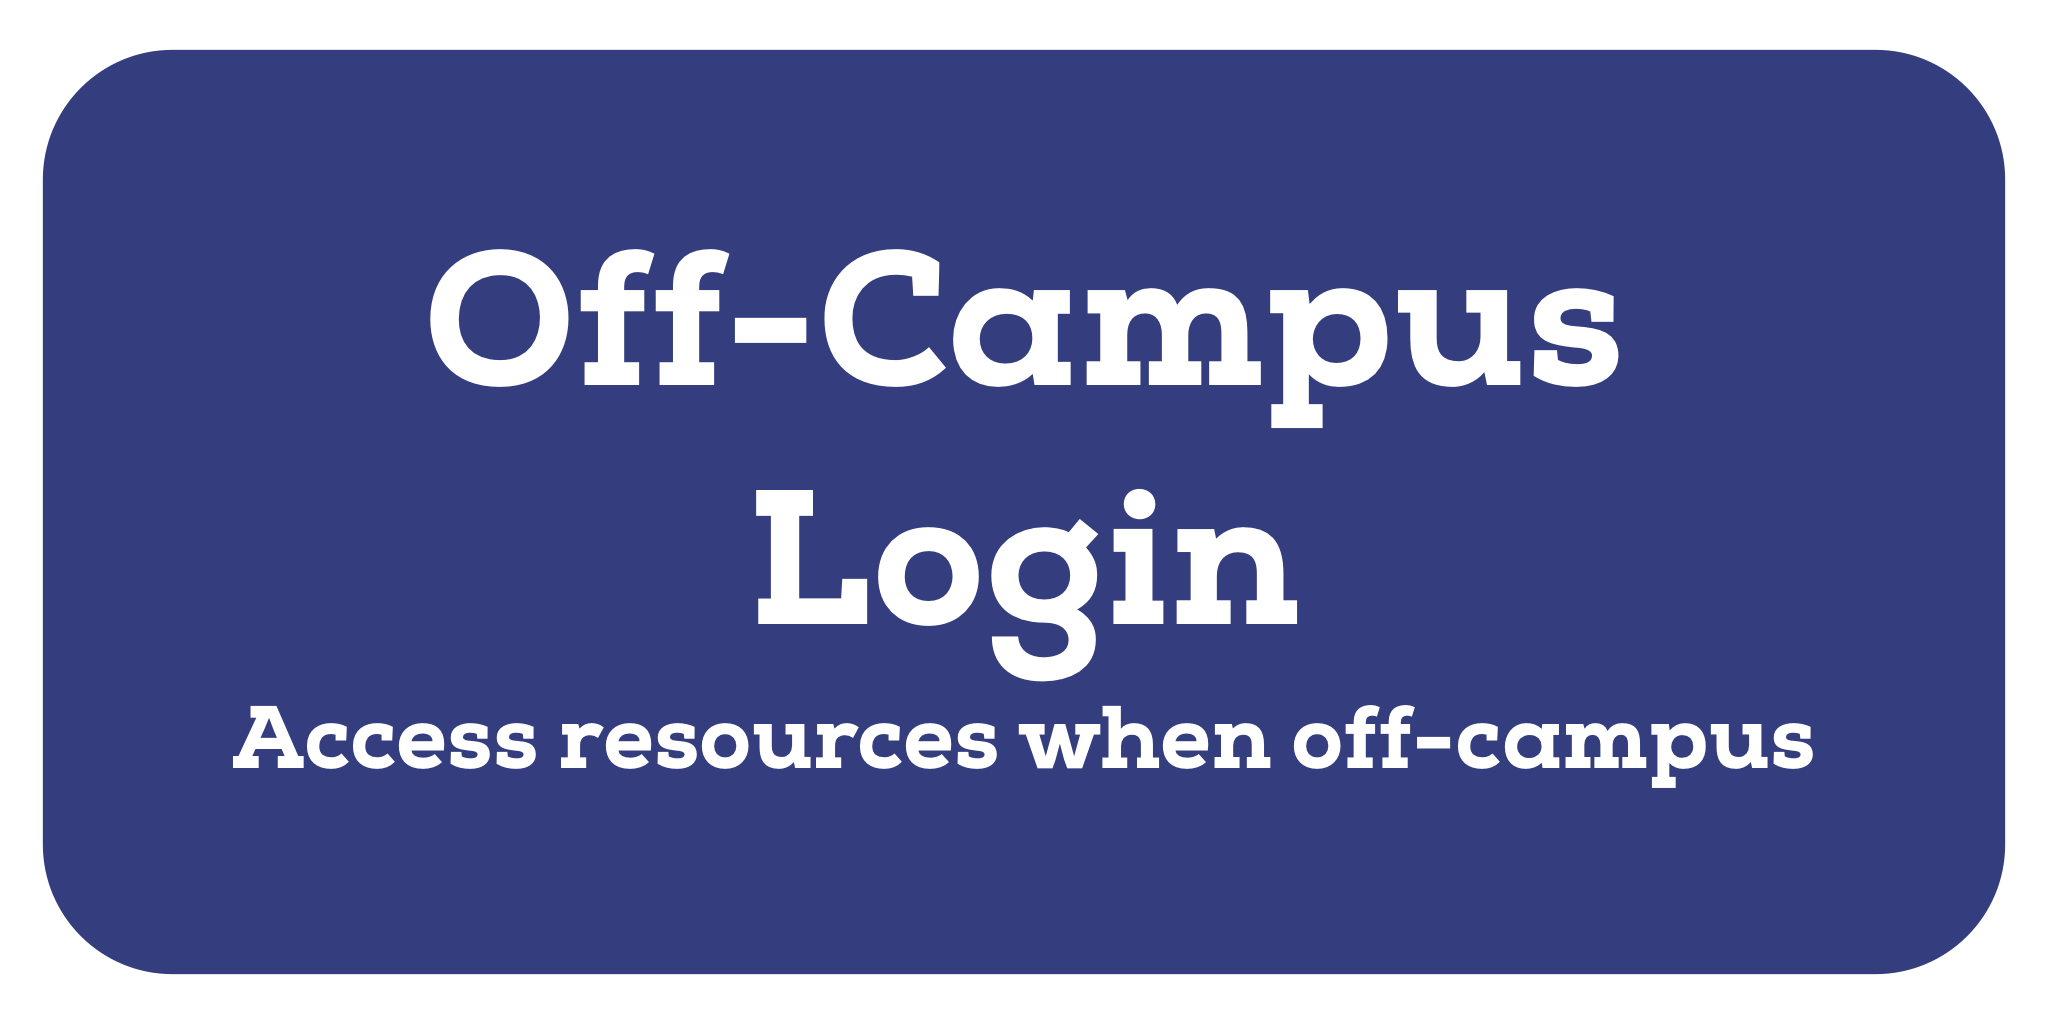 Off-Campus Login: Access resources when off-campus